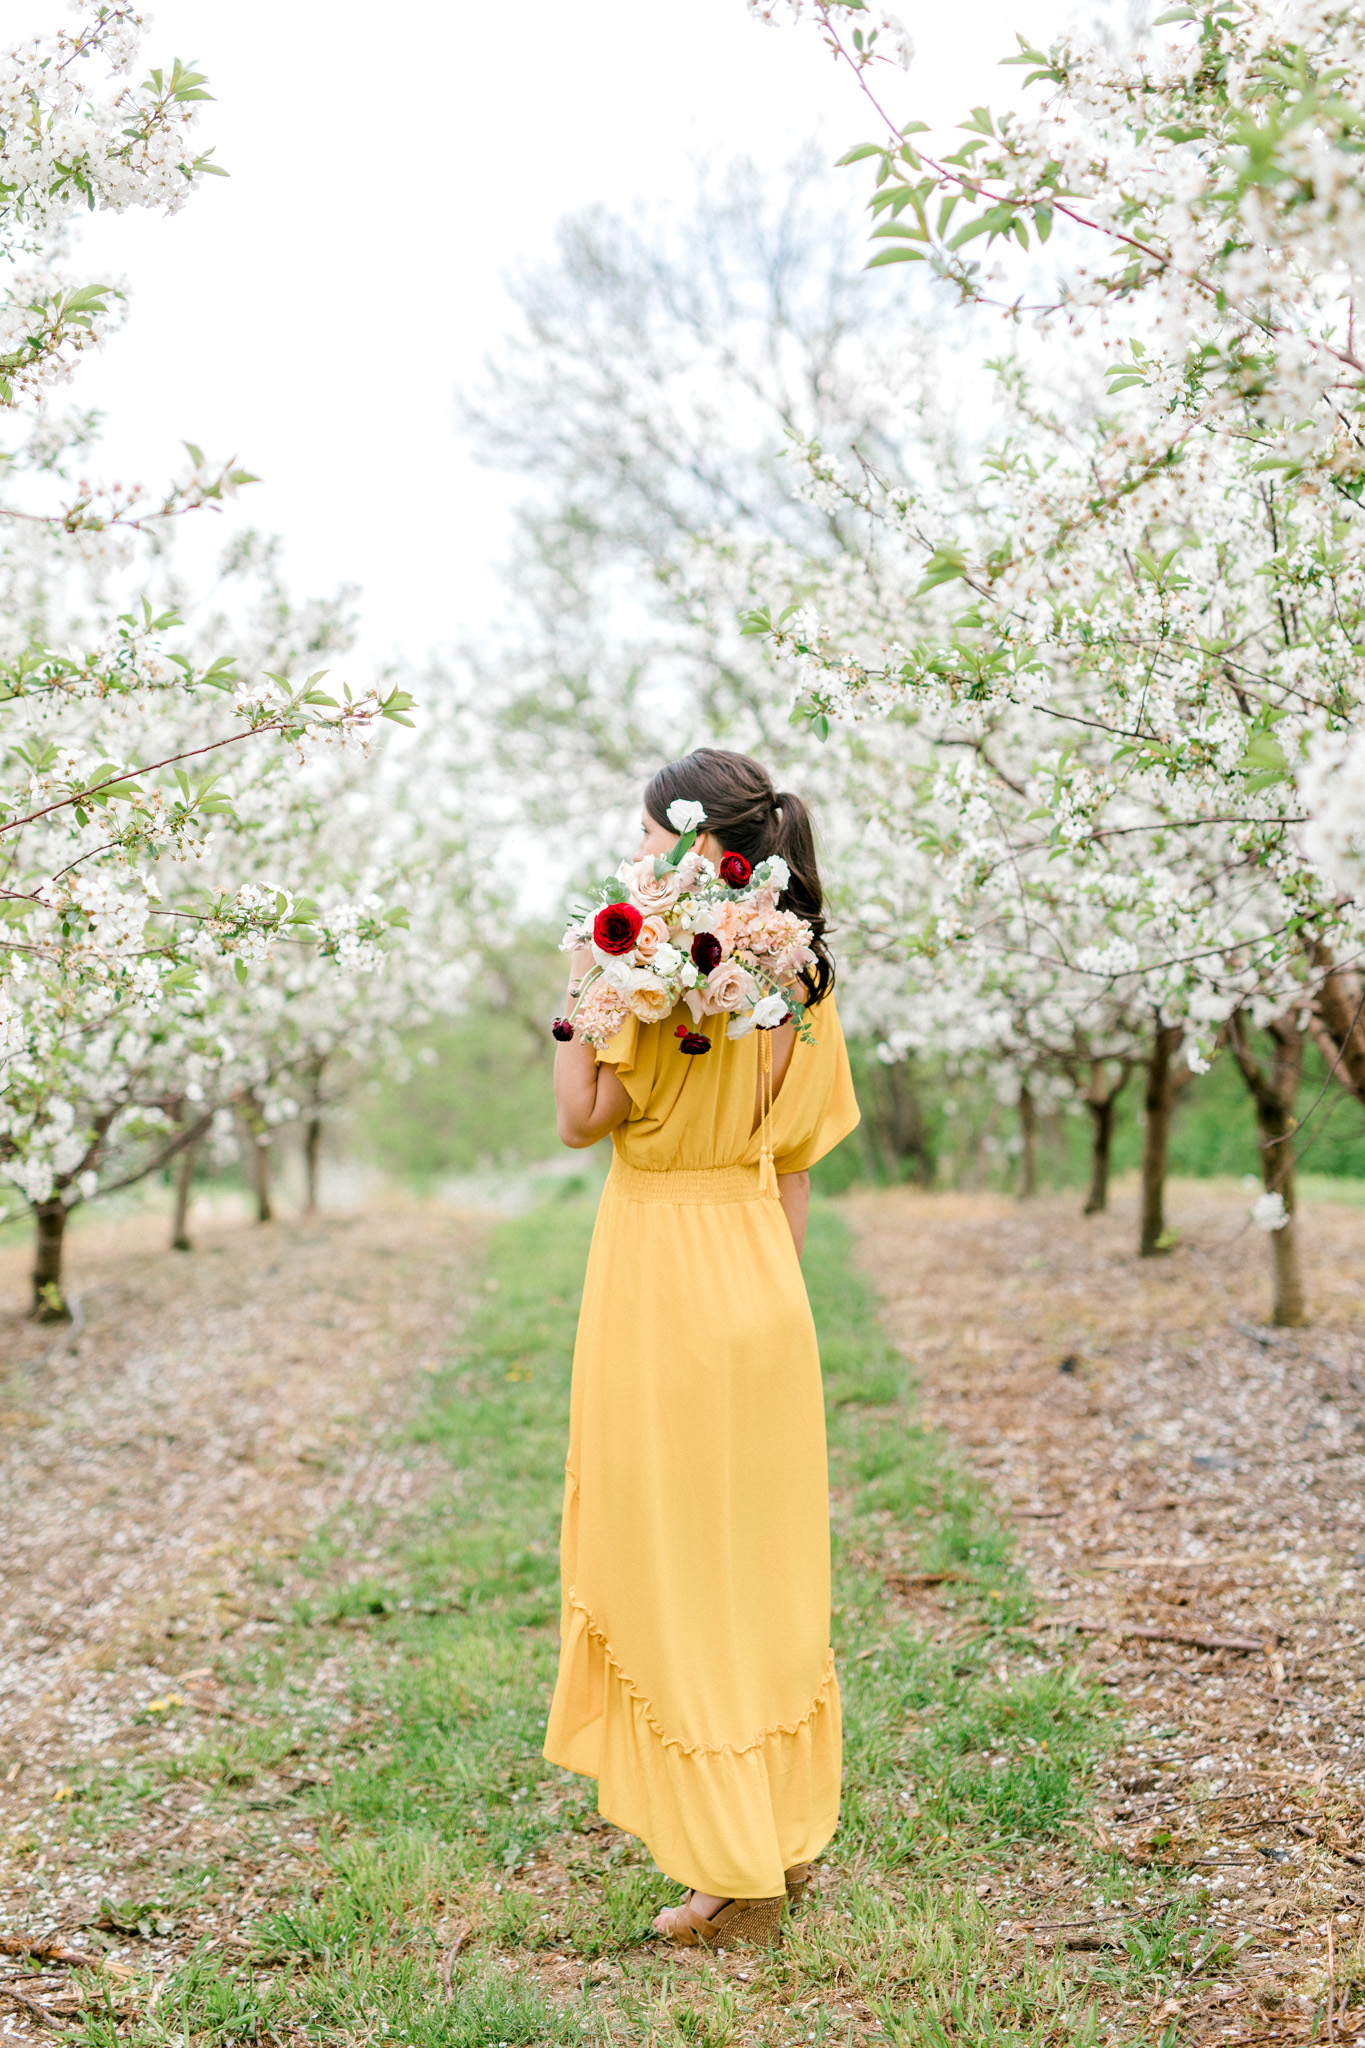 Spring Apple Blossom Engagement Session at the Orchard | Engagement Bouquet | Mustard Yellow Dress | What to Wear to Your Engagement Session | Grand Rapids Wedding Photographer